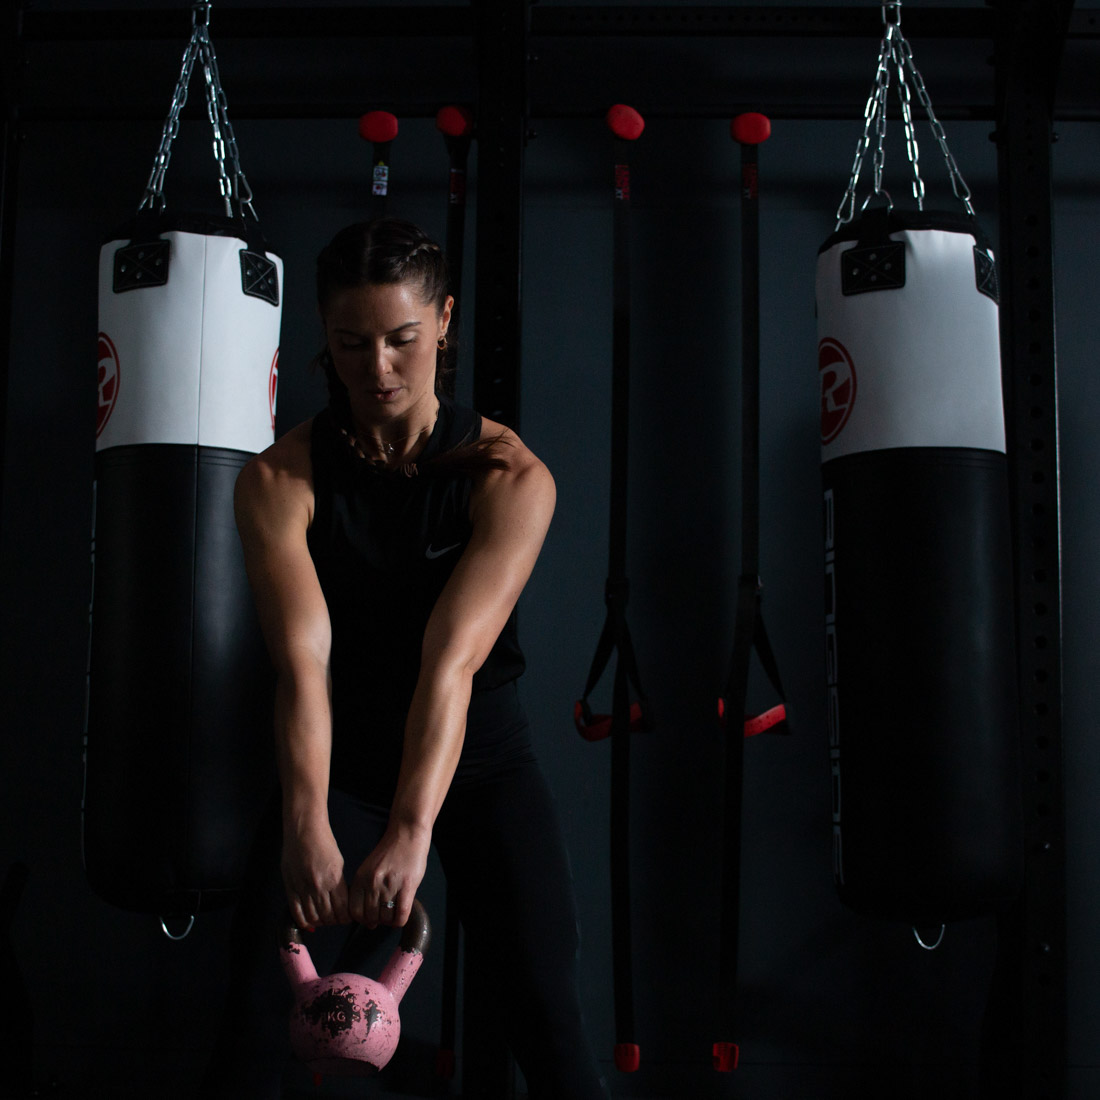 Woman working out with weights, gym workout. Gym photography Birmingham, Fitness photography Birmingham, professional Gym photographer UK